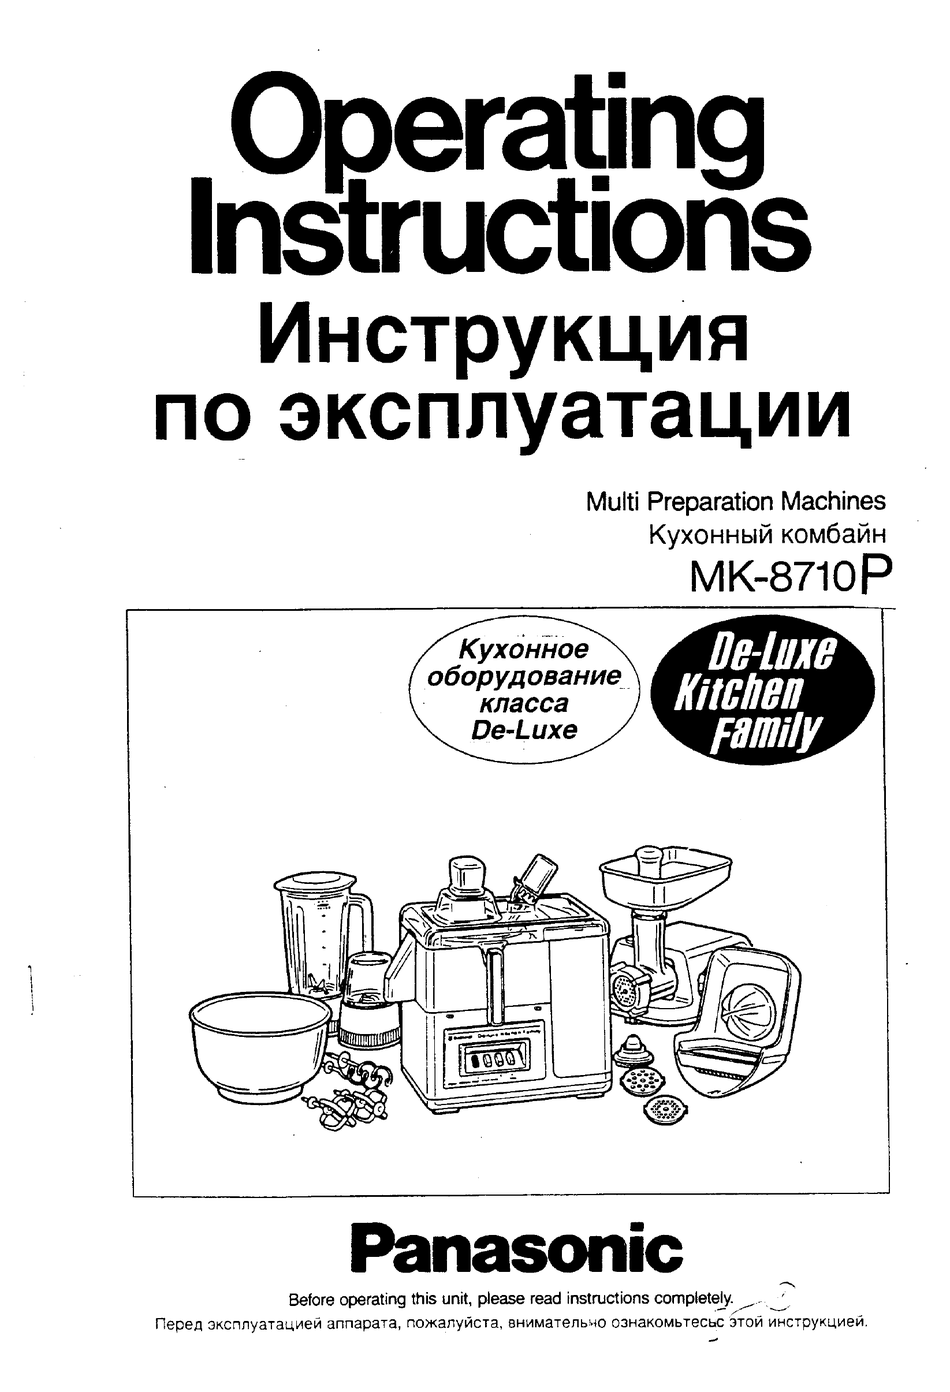 PANASONIC MK-8710P OPERATING INSTRUCTION Pdf Download